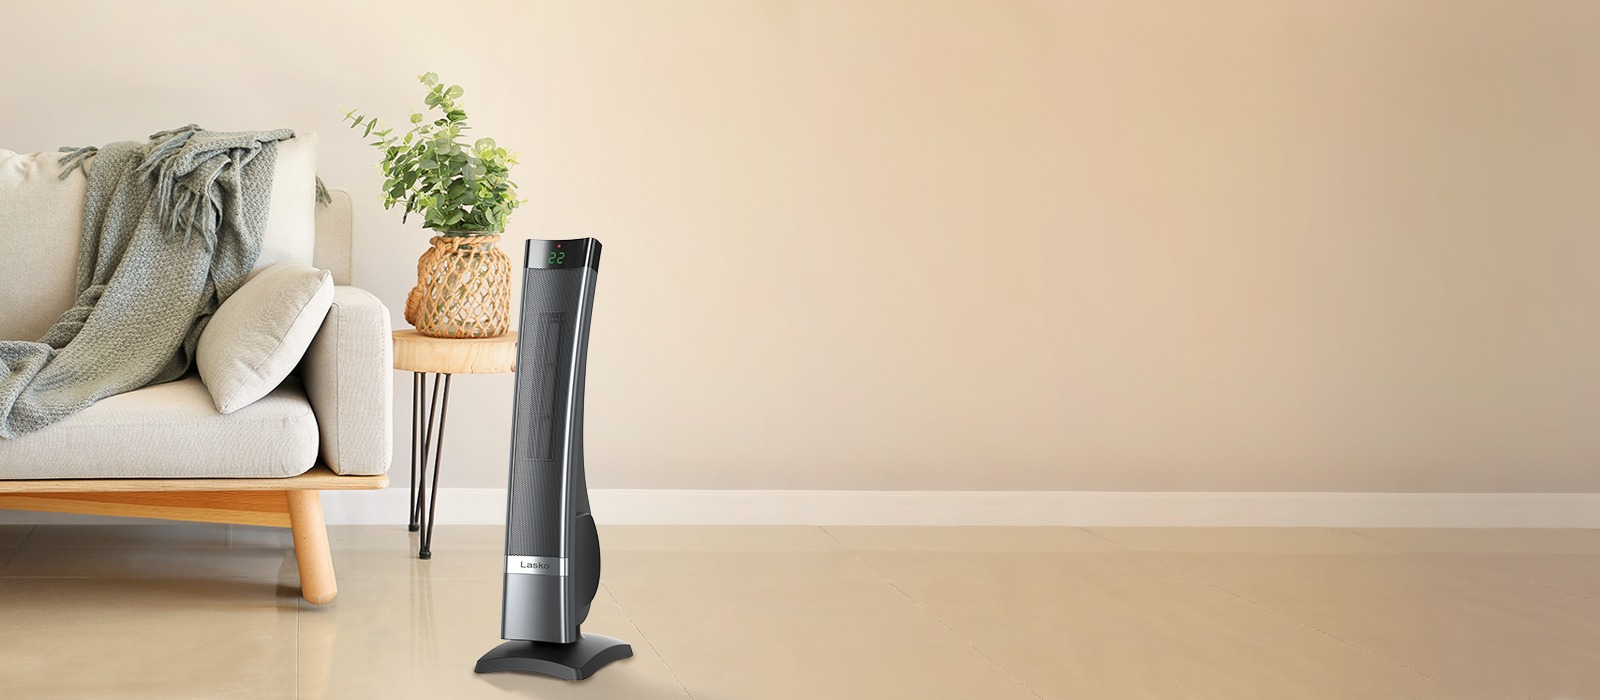 Lasko Tower Heater CT30710C in living room